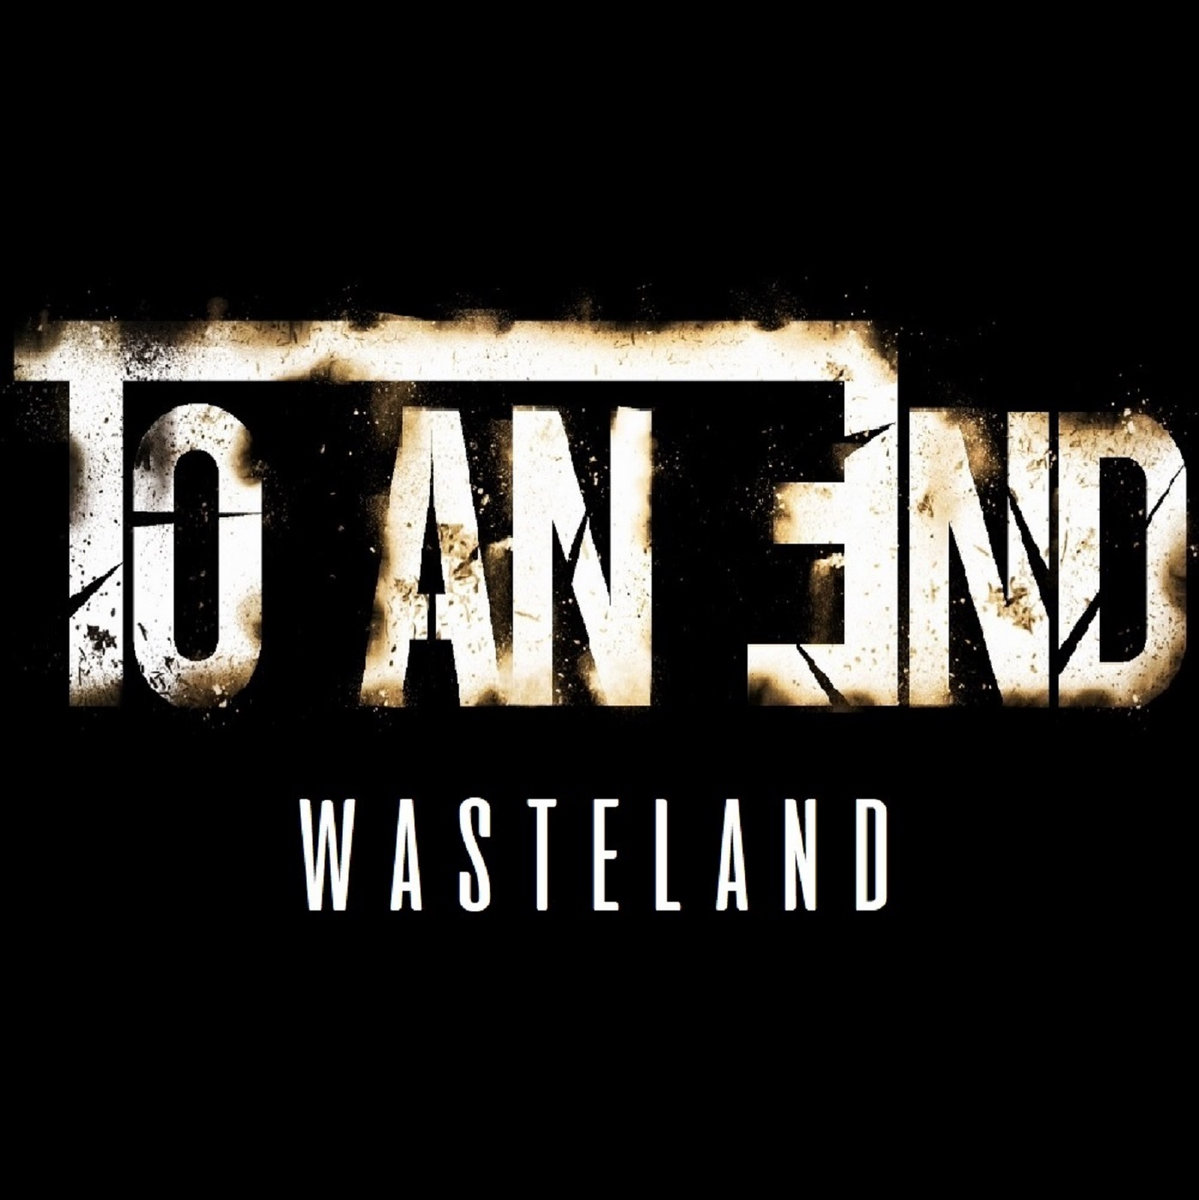 Wasteland by To An End